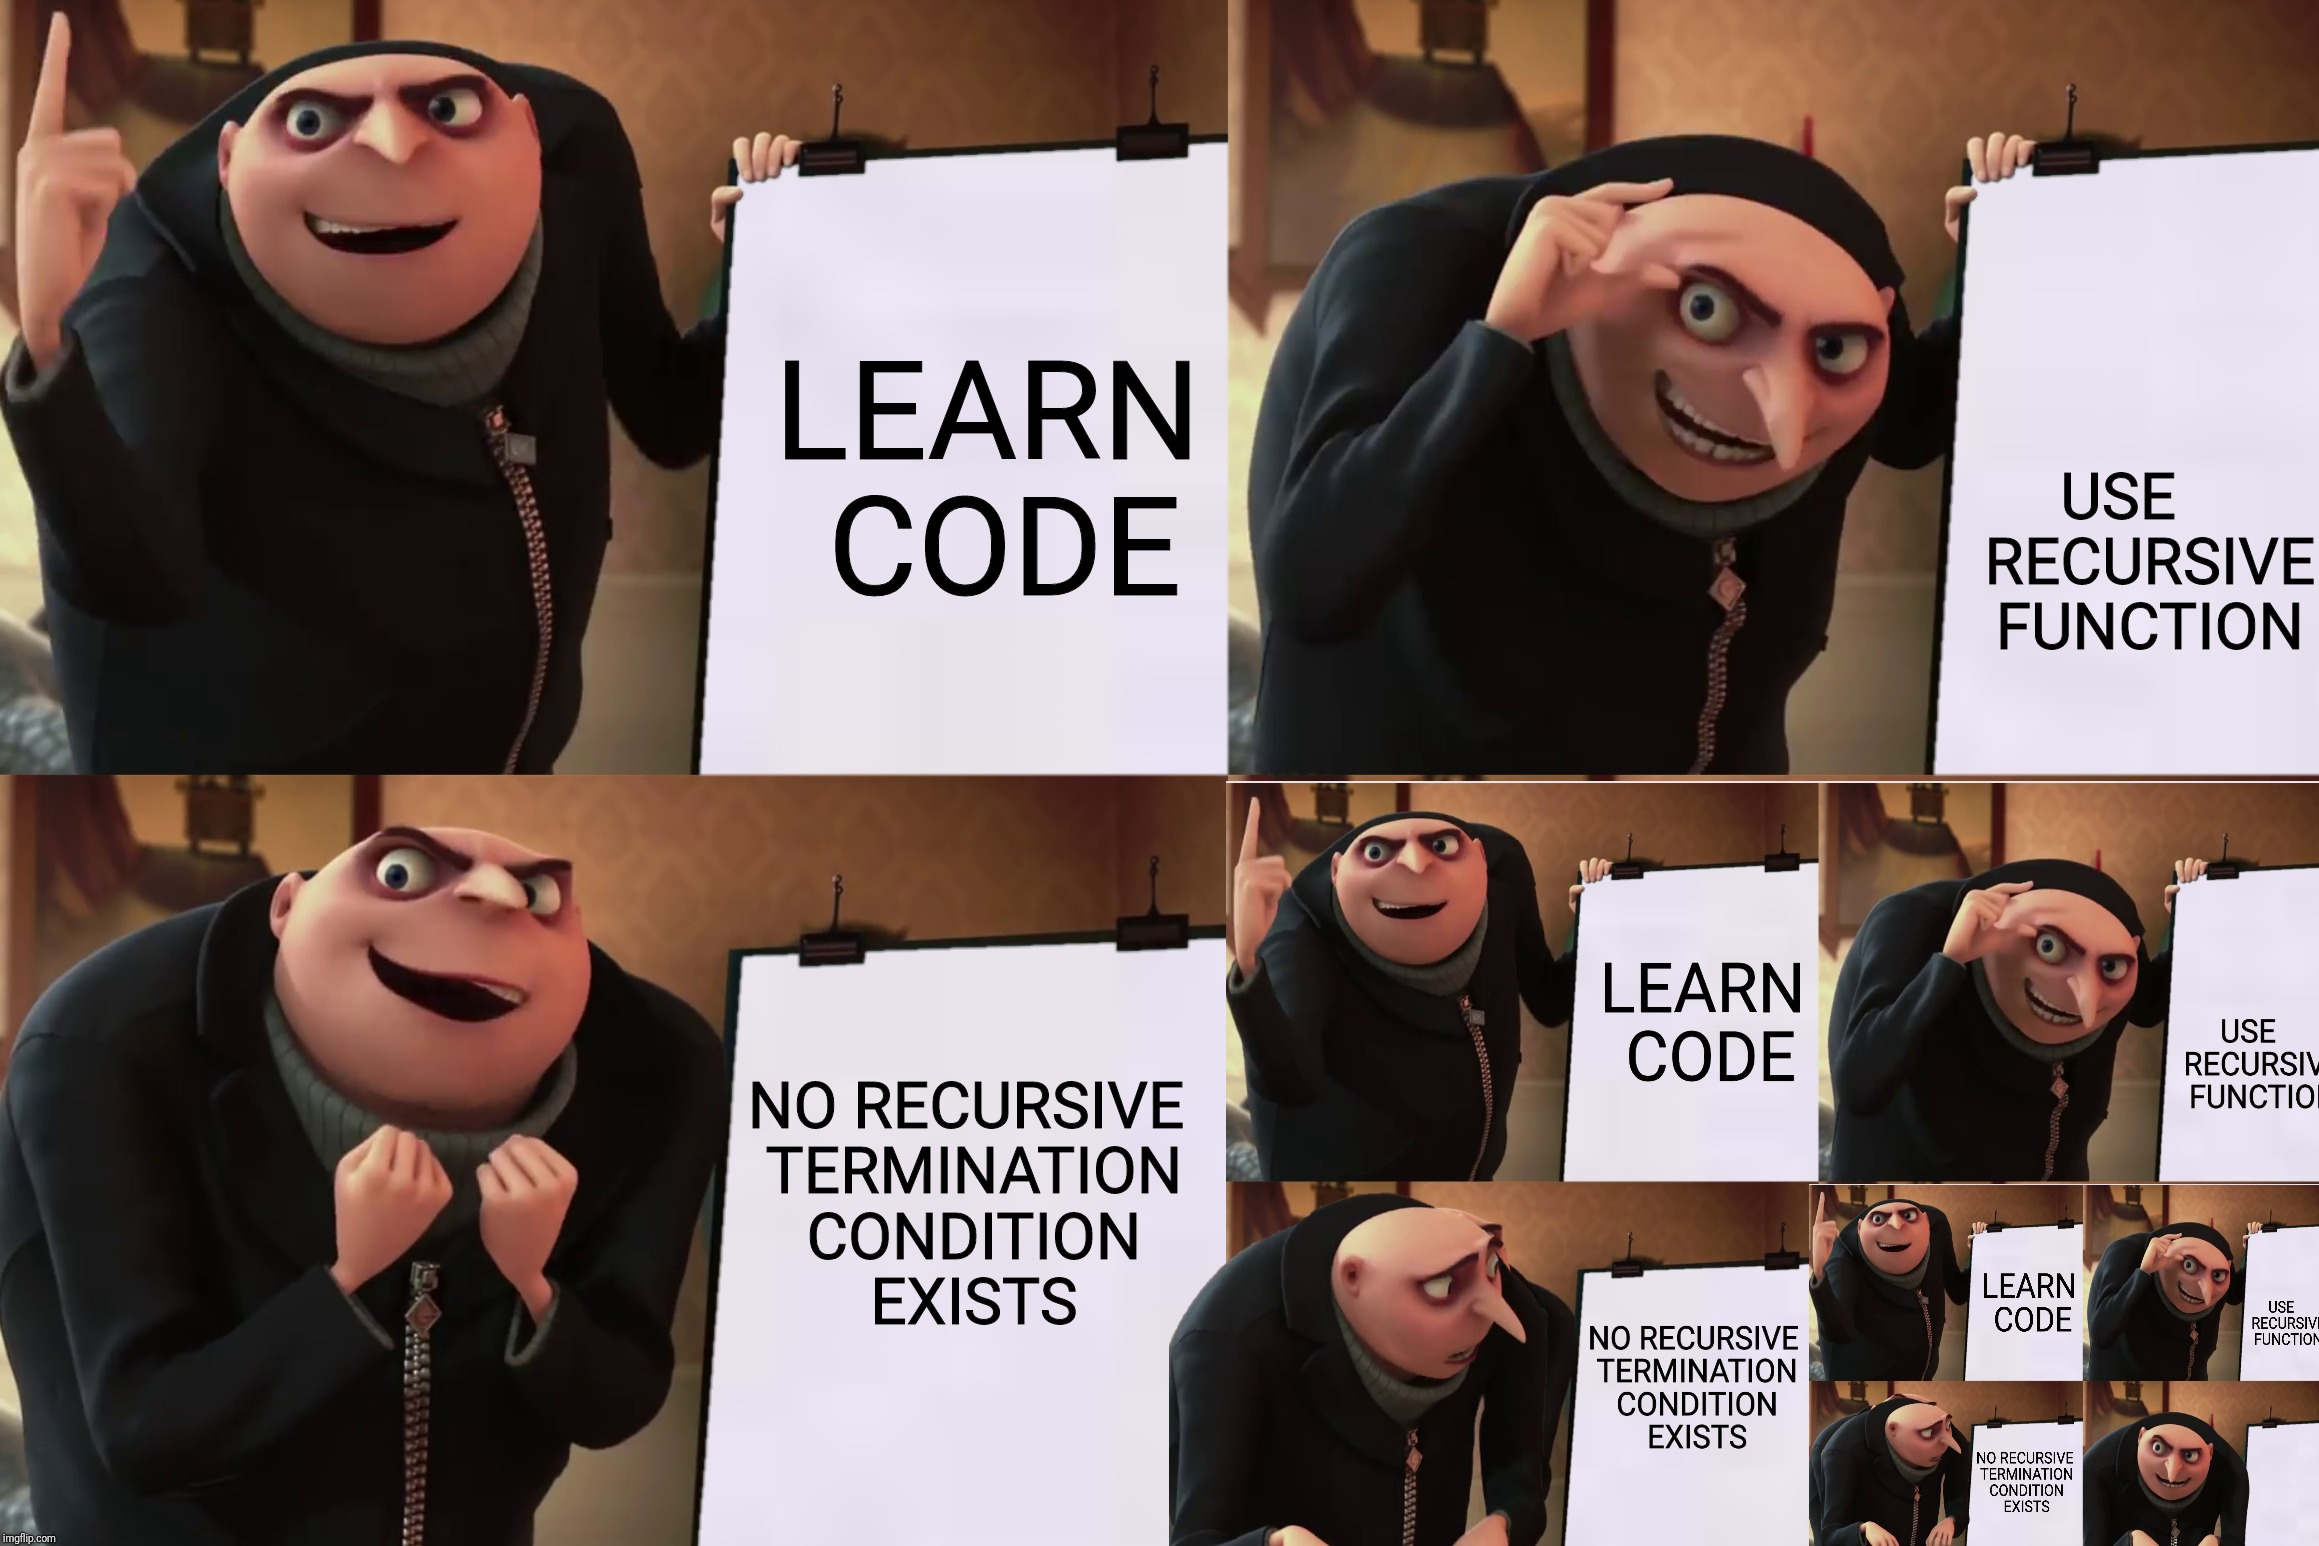 Gru's planning on going back to code camp | LEARN CODE USE    RECURSIVE FUNCTION NO RECURSIVE TERMINATION CONDITION EXISTS | image tagged in gru's plan,code,programming,recursive function,termination condition,hd memes | made w/ Imgflip meme maker